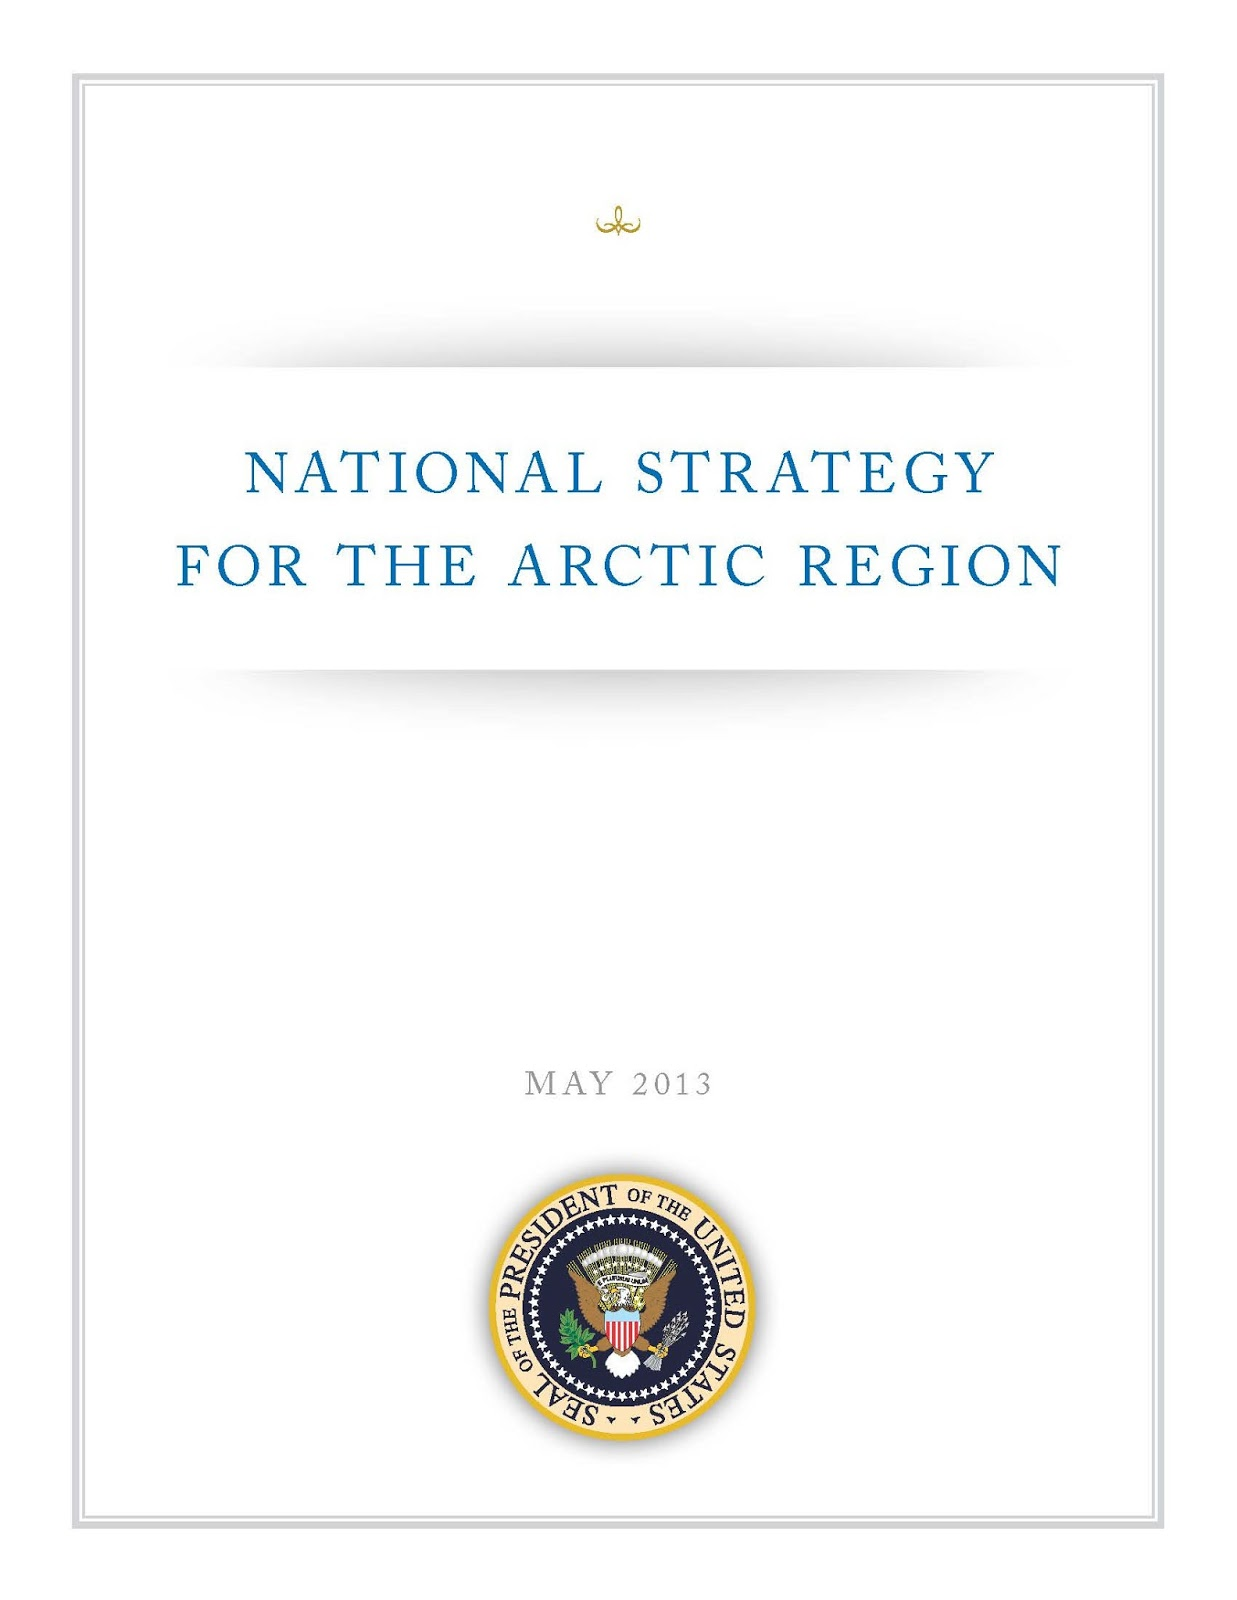 Front page of US National Strategy for the Arctic region